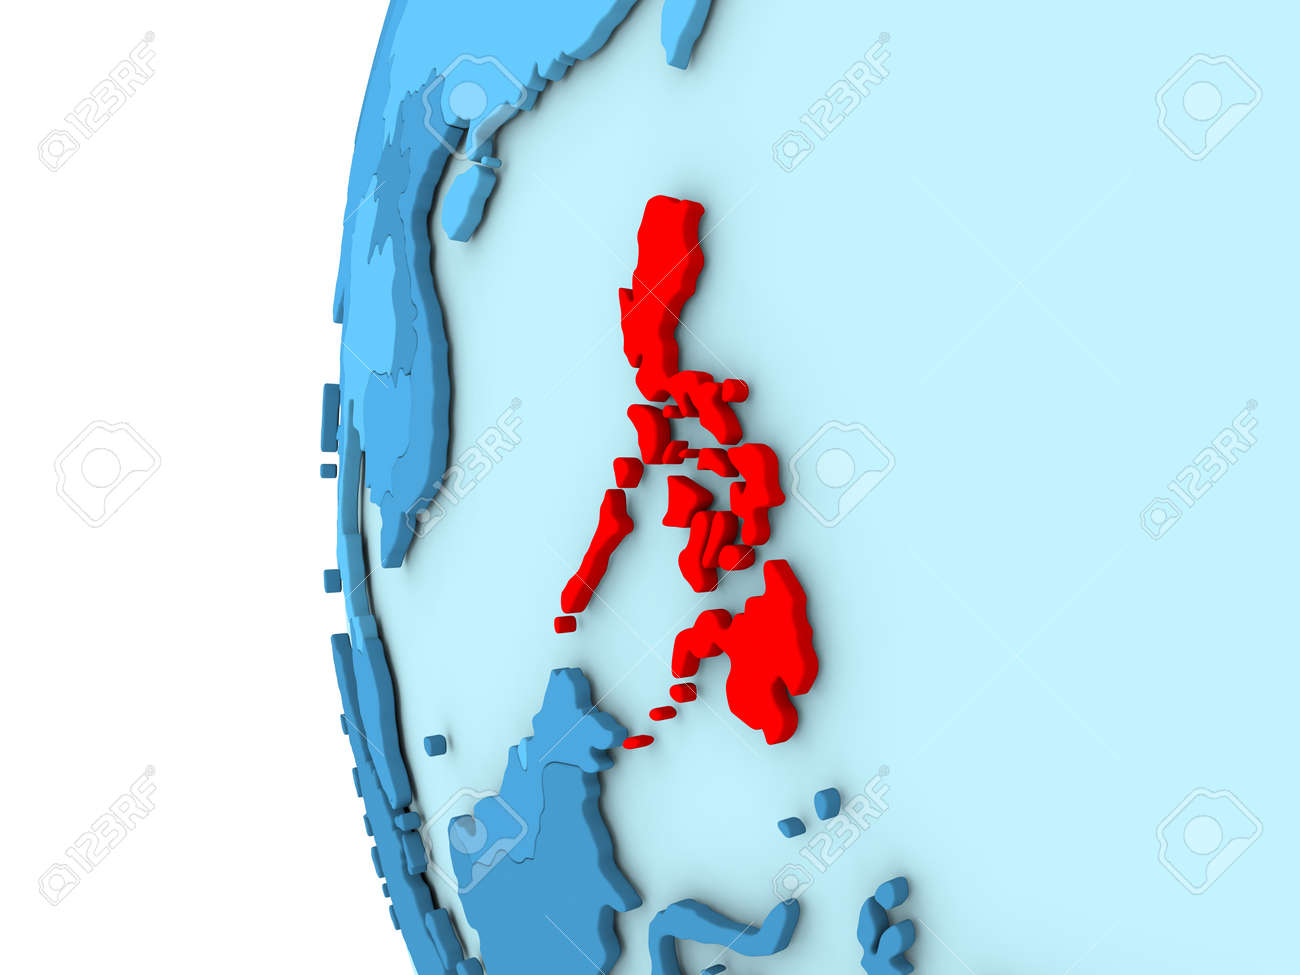 Simple Philippines Map.Map Of Philippines On Simple Blue 3d Illustration Stock Photo